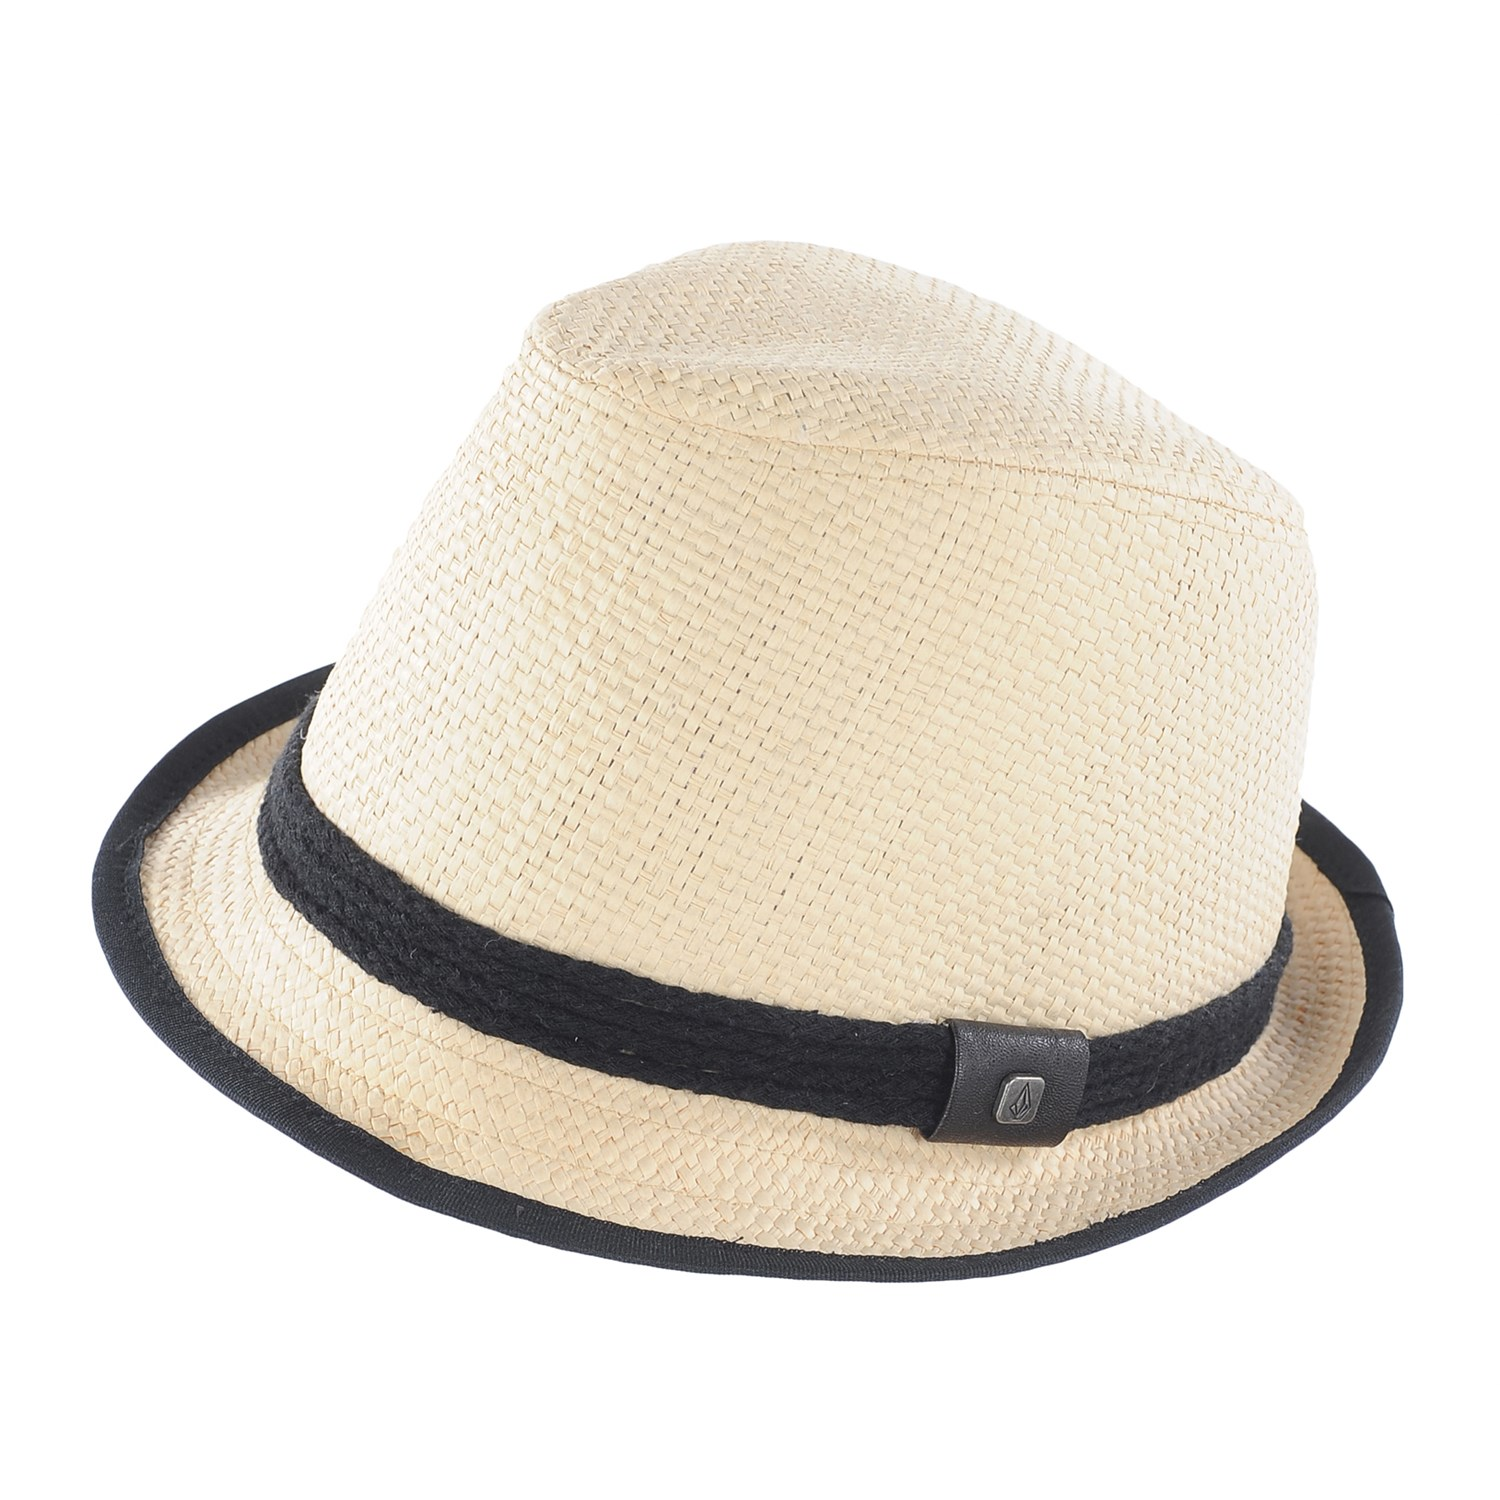 Shop eBay for great deals on Straw Fedora/Trilby Hats for Women. You'll find new or used products in Straw Fedora/Trilby Hats for Women on eBay. Free shipping on selected items.